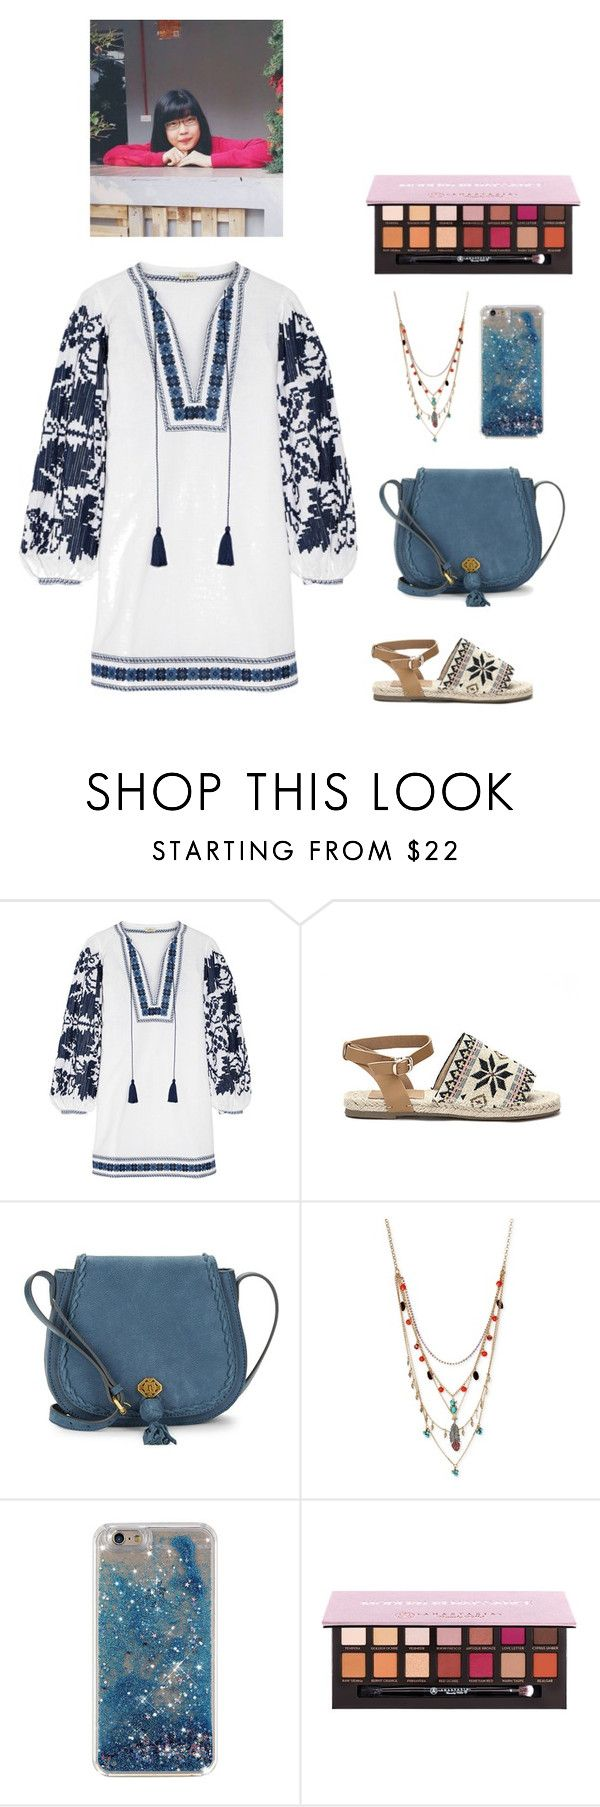 """""""Flying with your love"""" by lynguyen-i ❤ liked on Polyvore featuring beauty, Talitha, Nanette Lepore, Betsey Johnson and Anastasia Beverly Hills"""